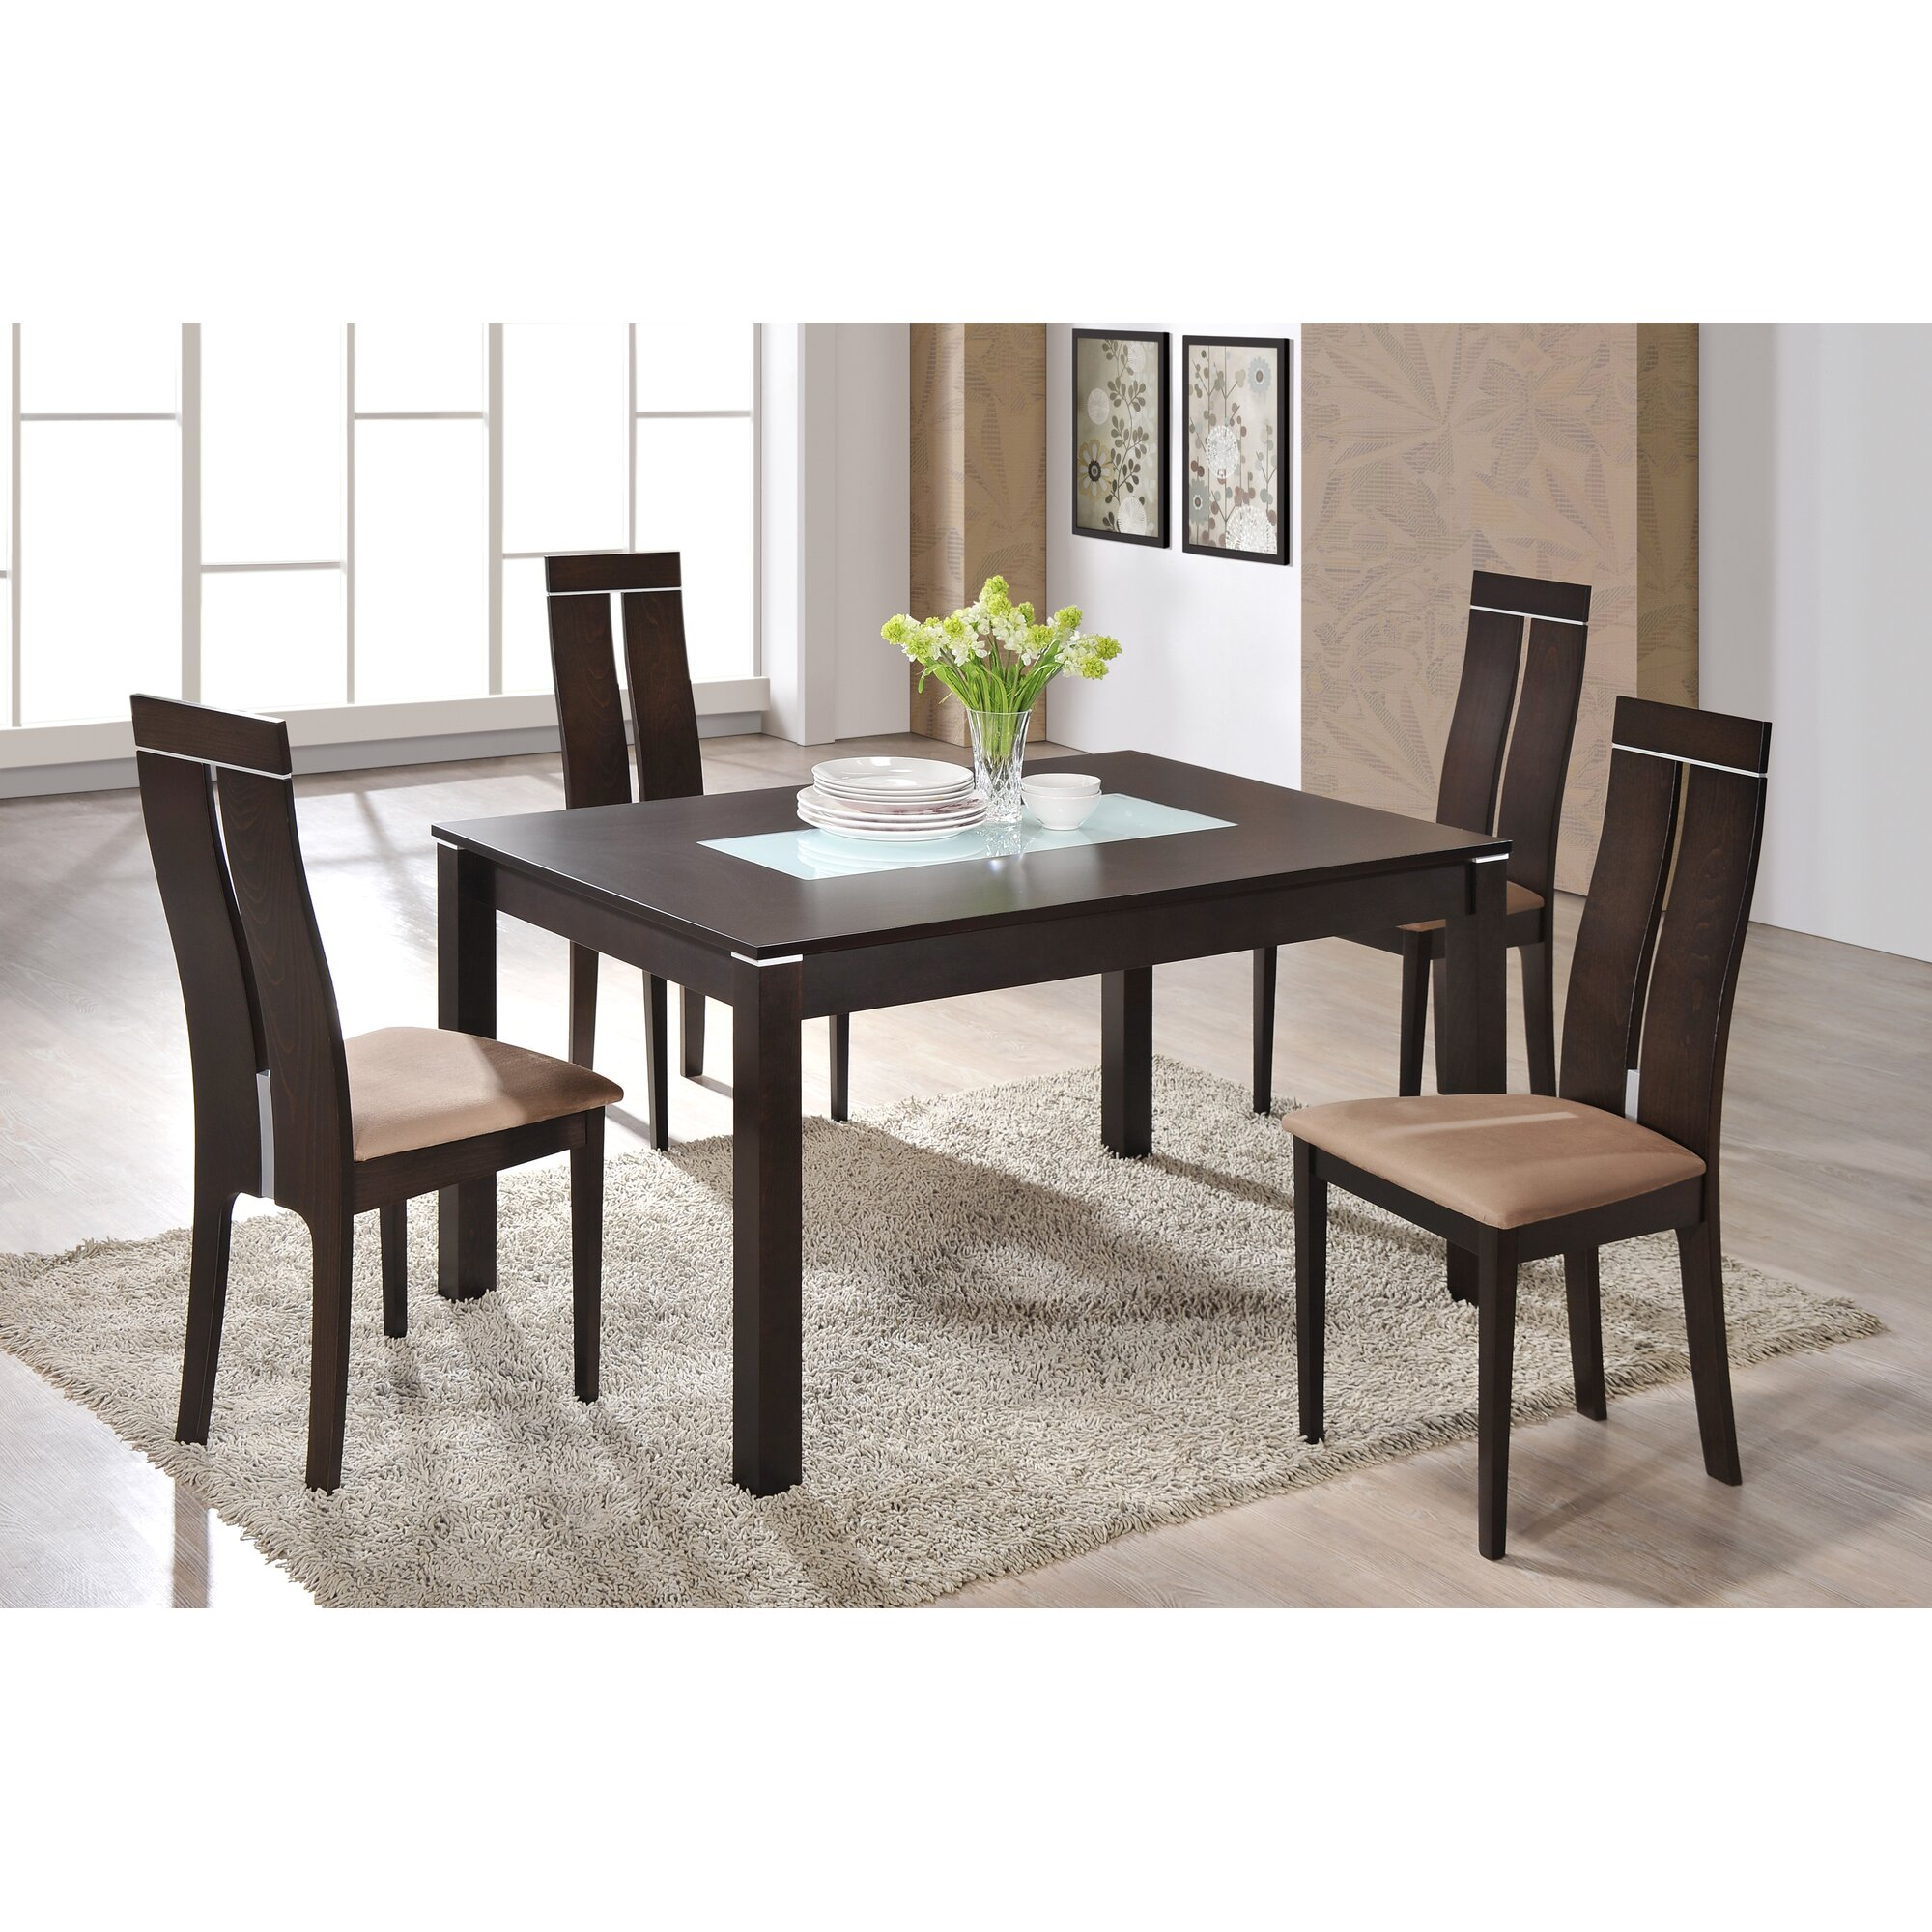 Global furniture usa extendable dining table reviews for J furniture usa reviews